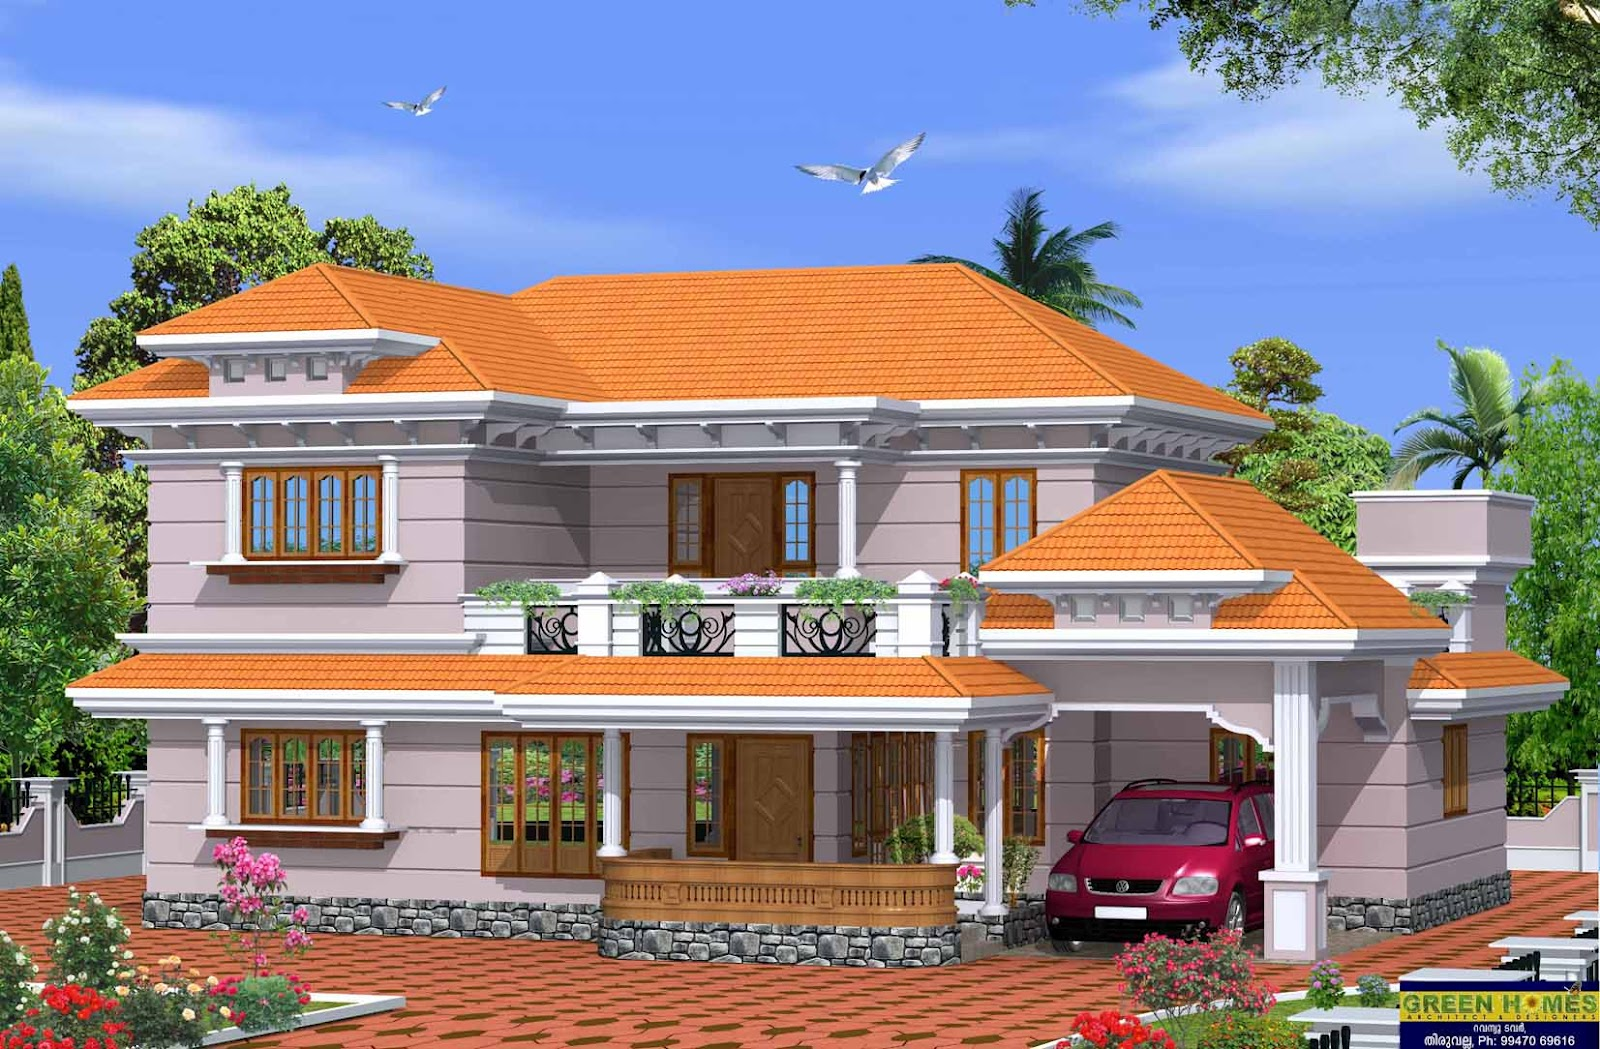 green homes beautiful 4 bhk kerala model home 2750. Black Bedroom Furniture Sets. Home Design Ideas